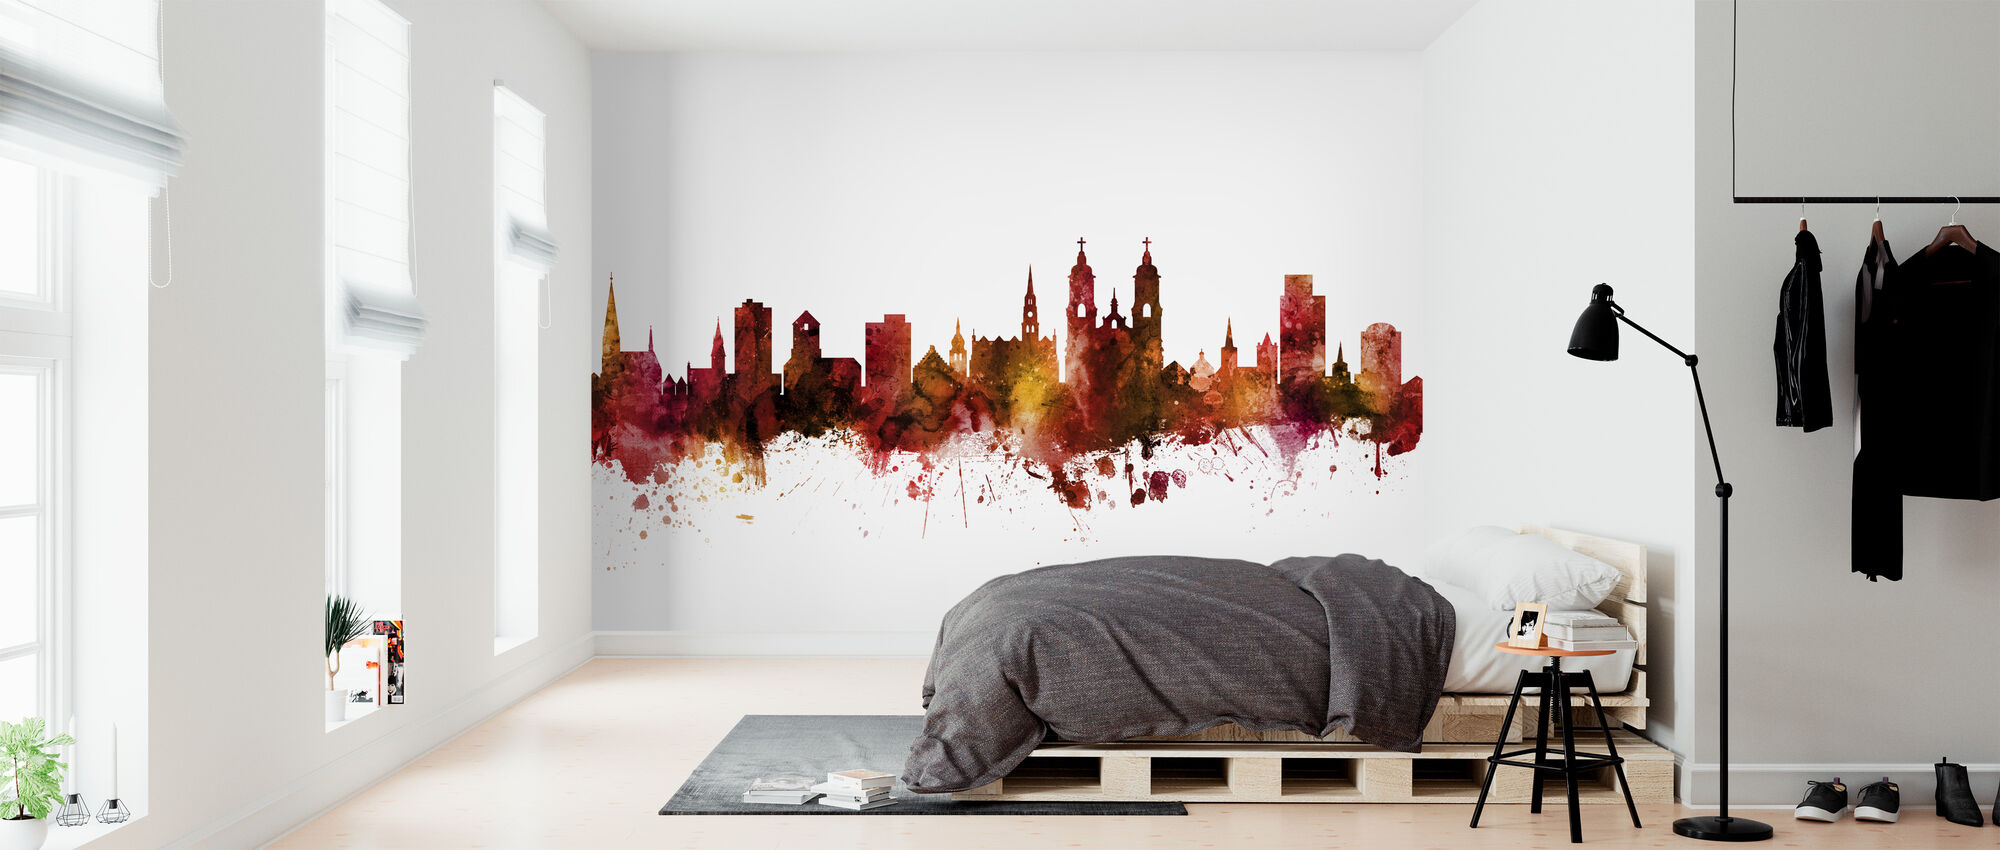 St Gallen Switzerland Skyline - Wallpaper - Bedroom